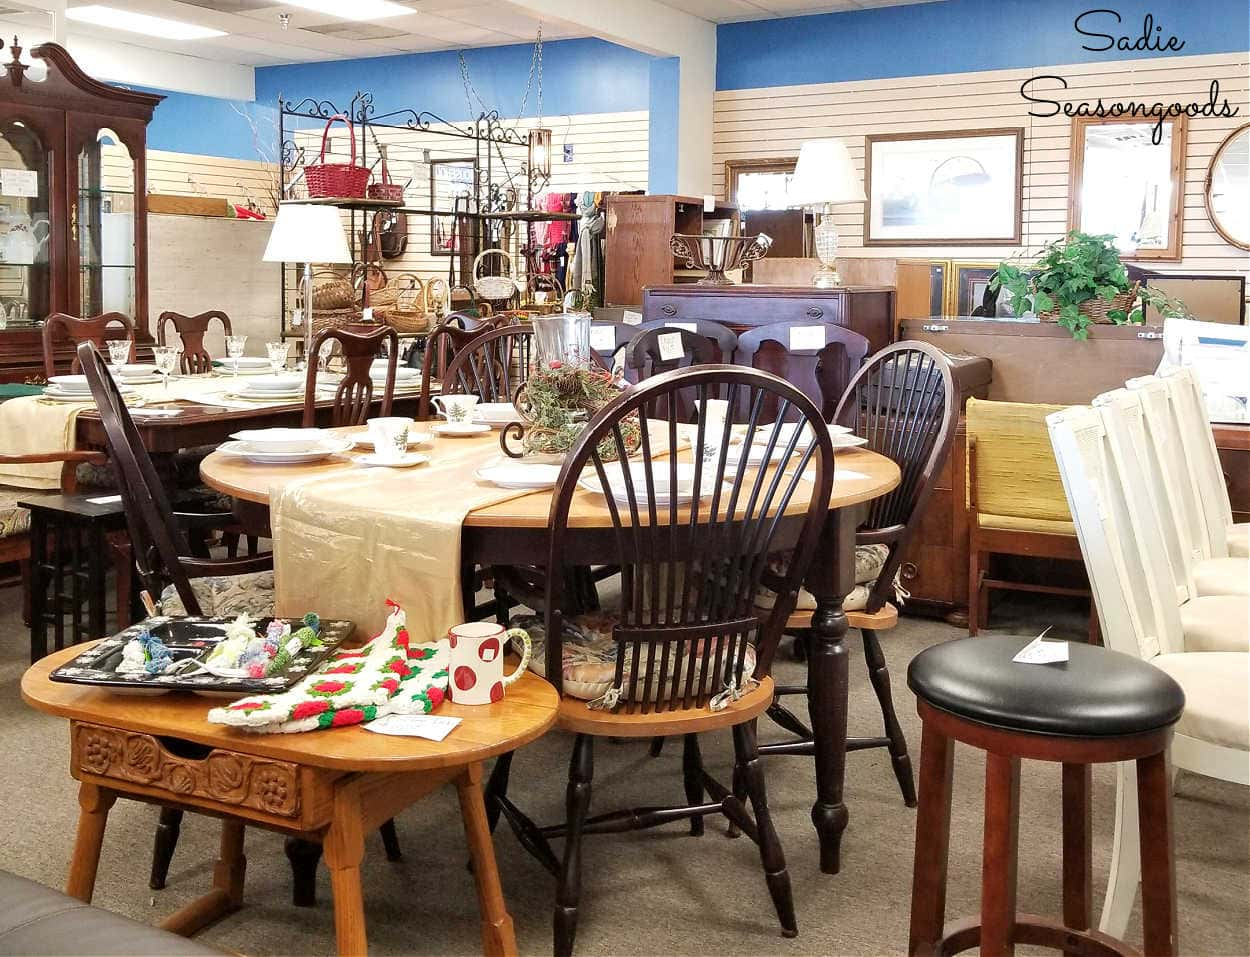 used furniture at freedom house thrift